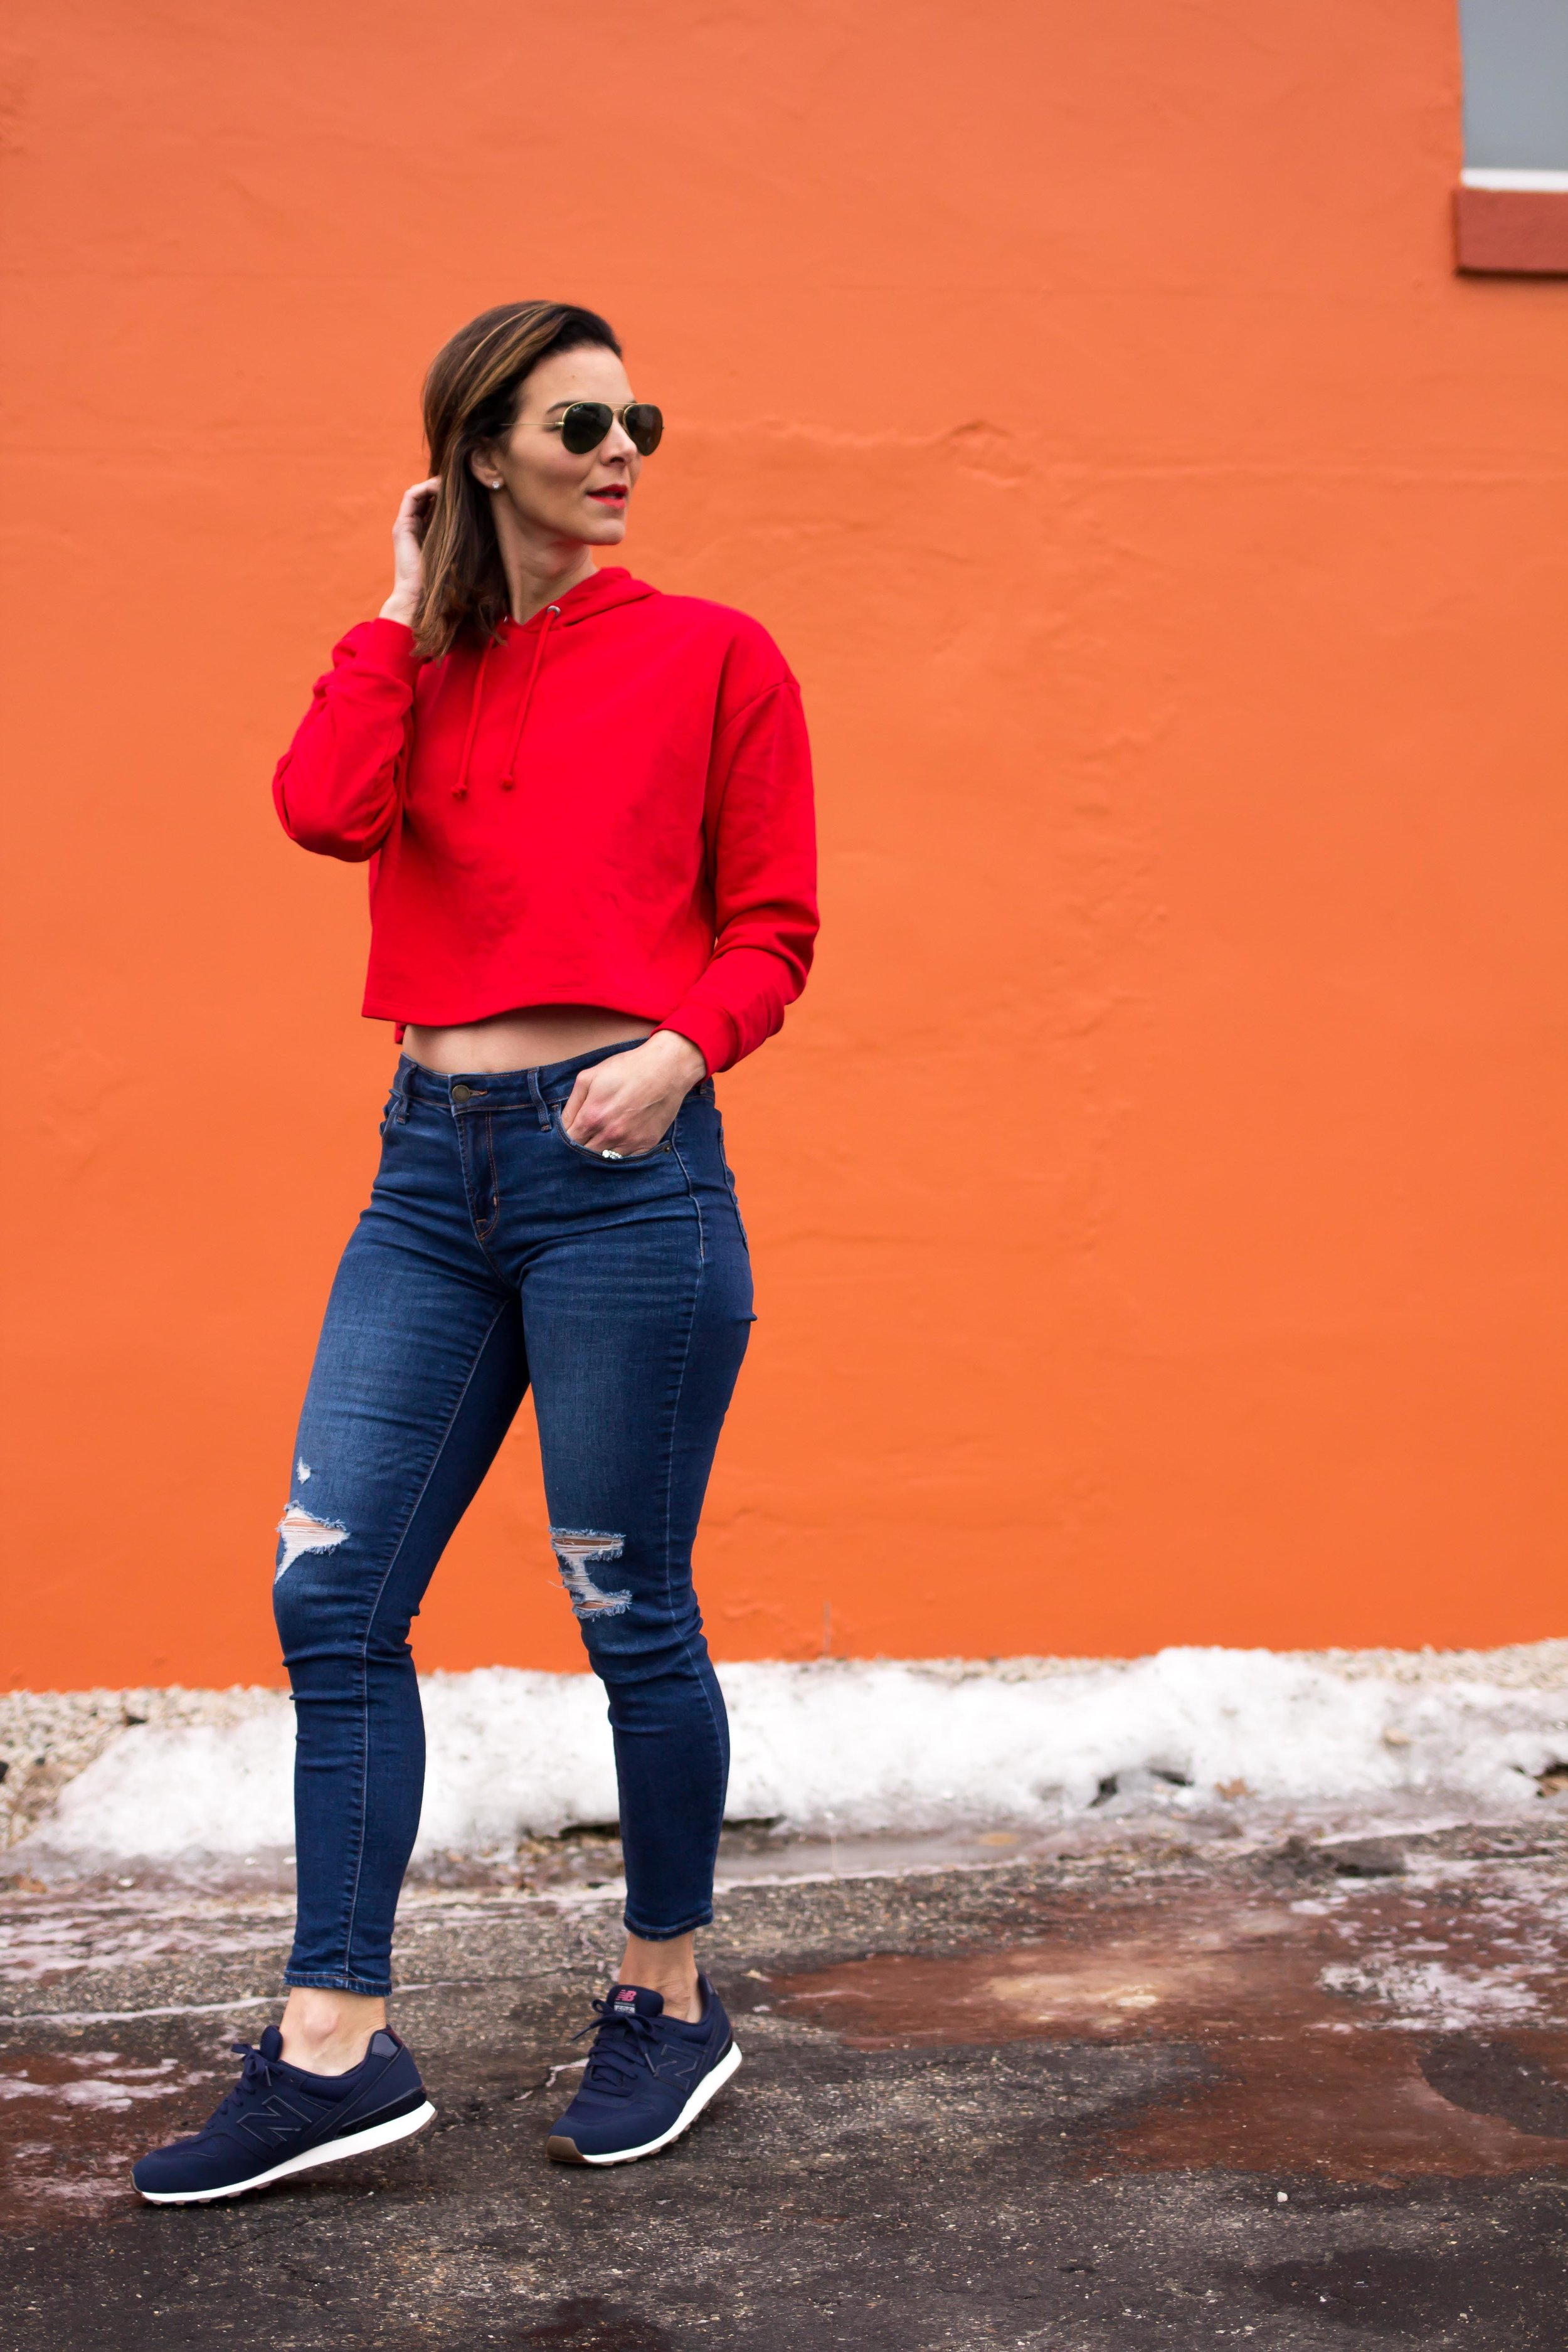 Casual Friday Outfits – Weekend Outfits – Fashion for Women – Cropped Hoodie Outfits – Weekend Wear –  heartandseam.com  #heartandseam